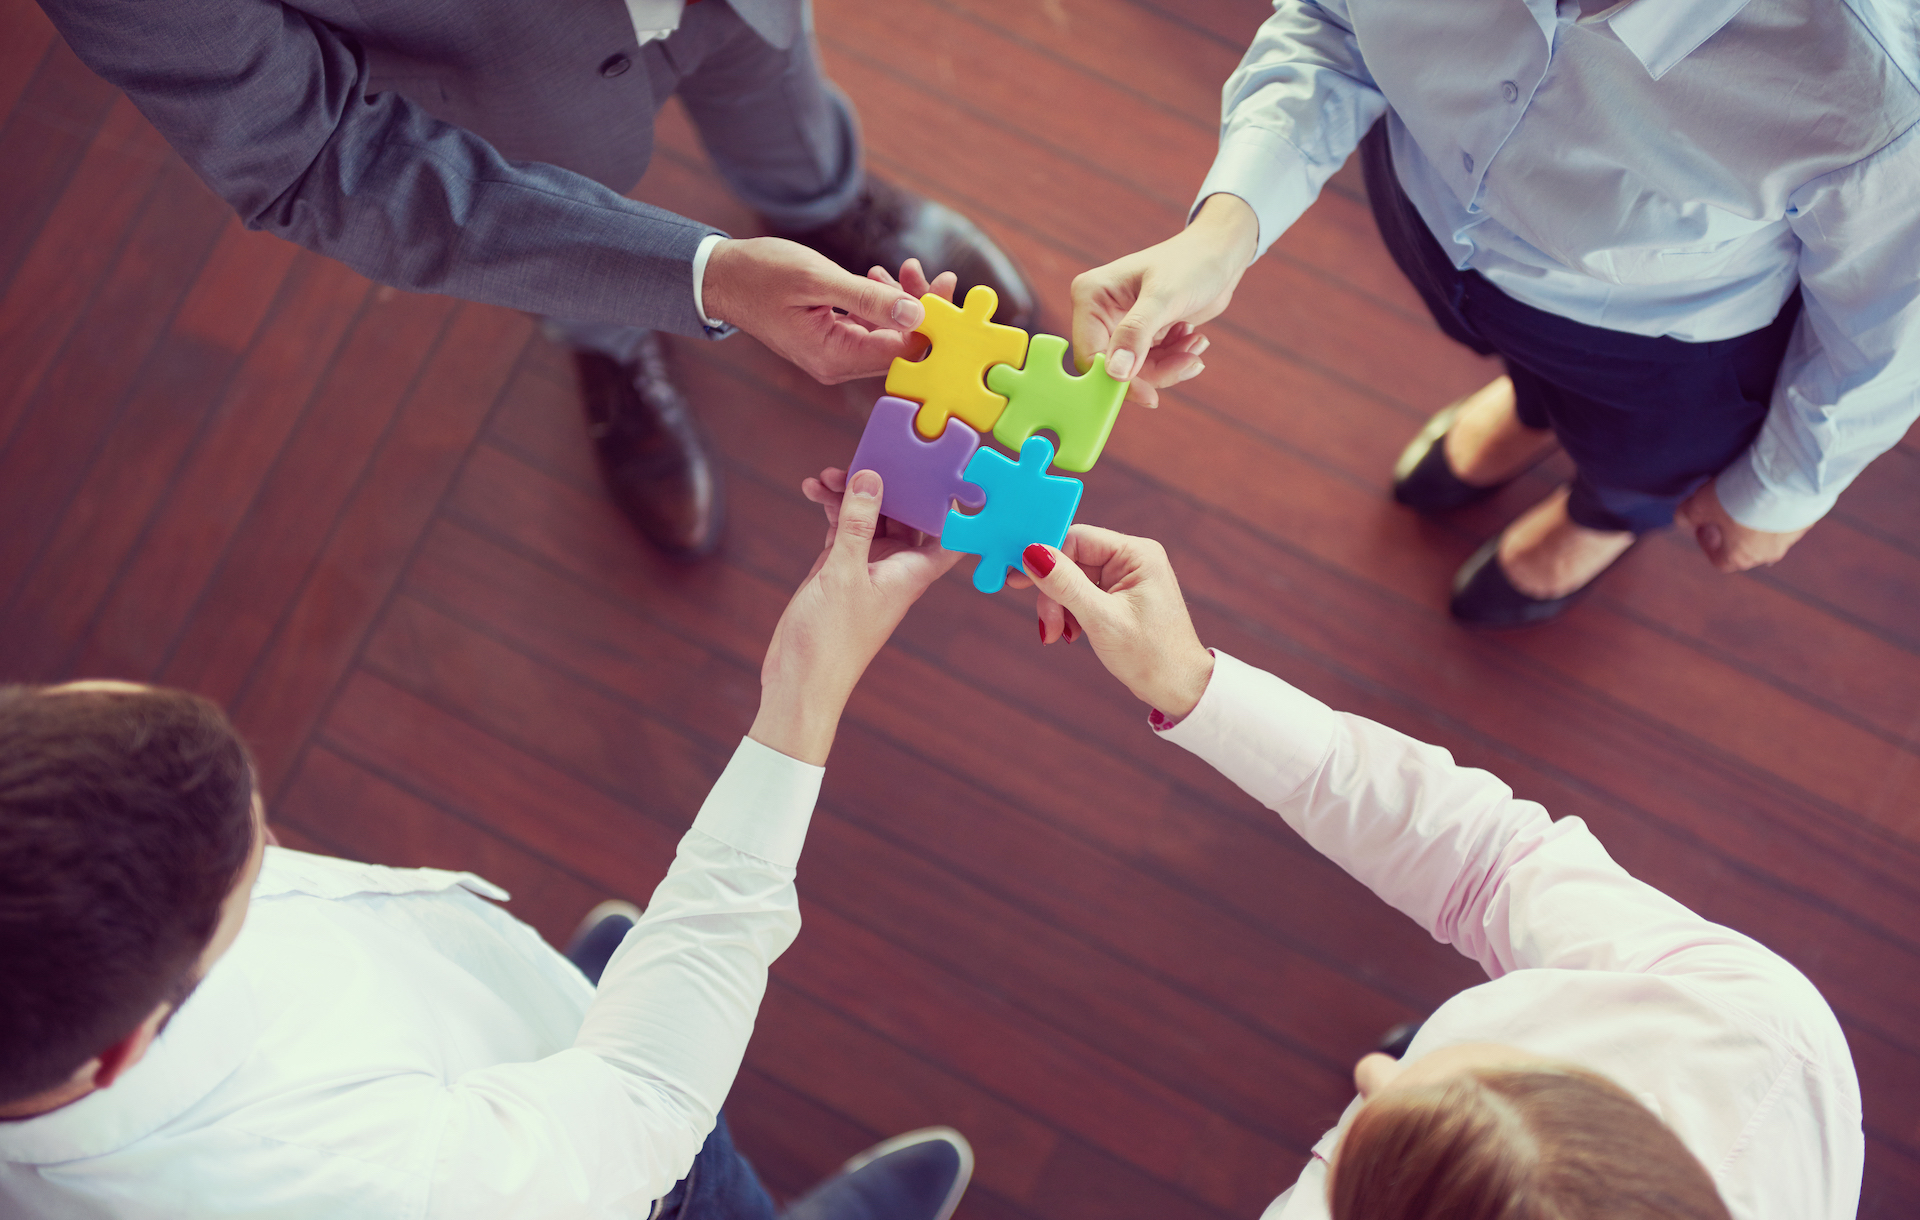 business-people-group-assembling-jigsaw-puzzle-P36PRZW